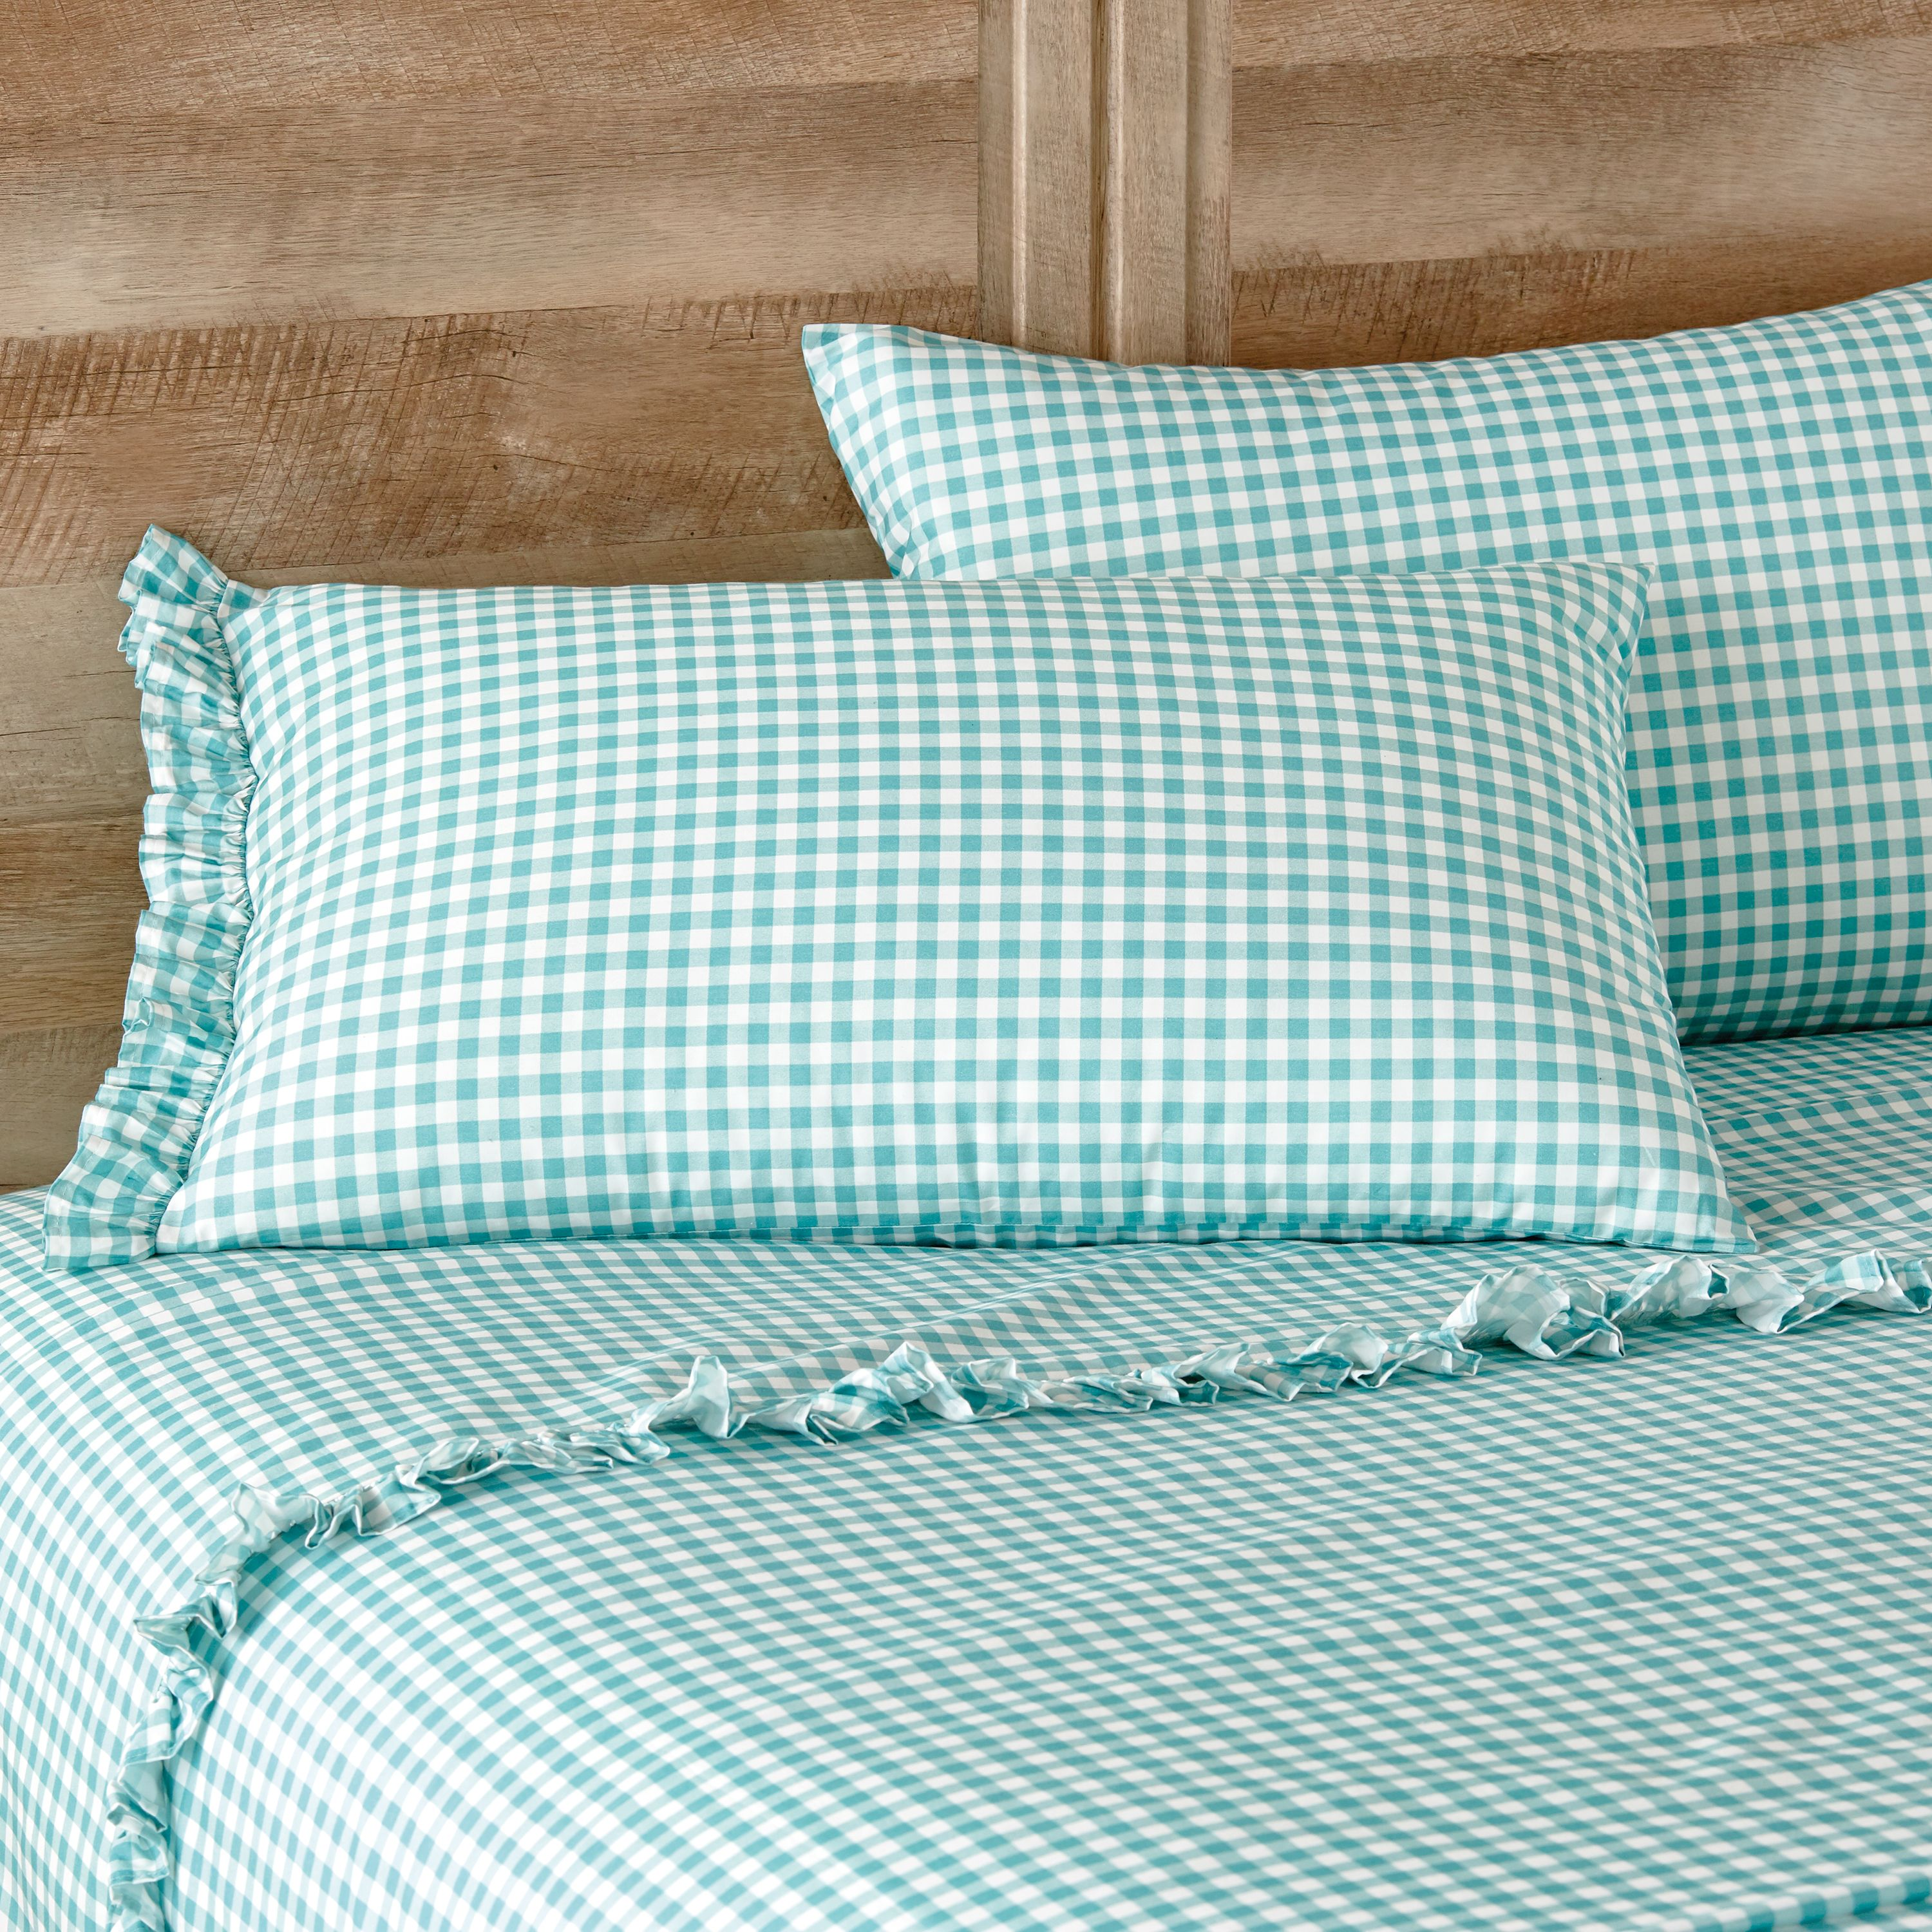 The Pioneer Woman Gingham Teal Ruffle Queen Sheet Set